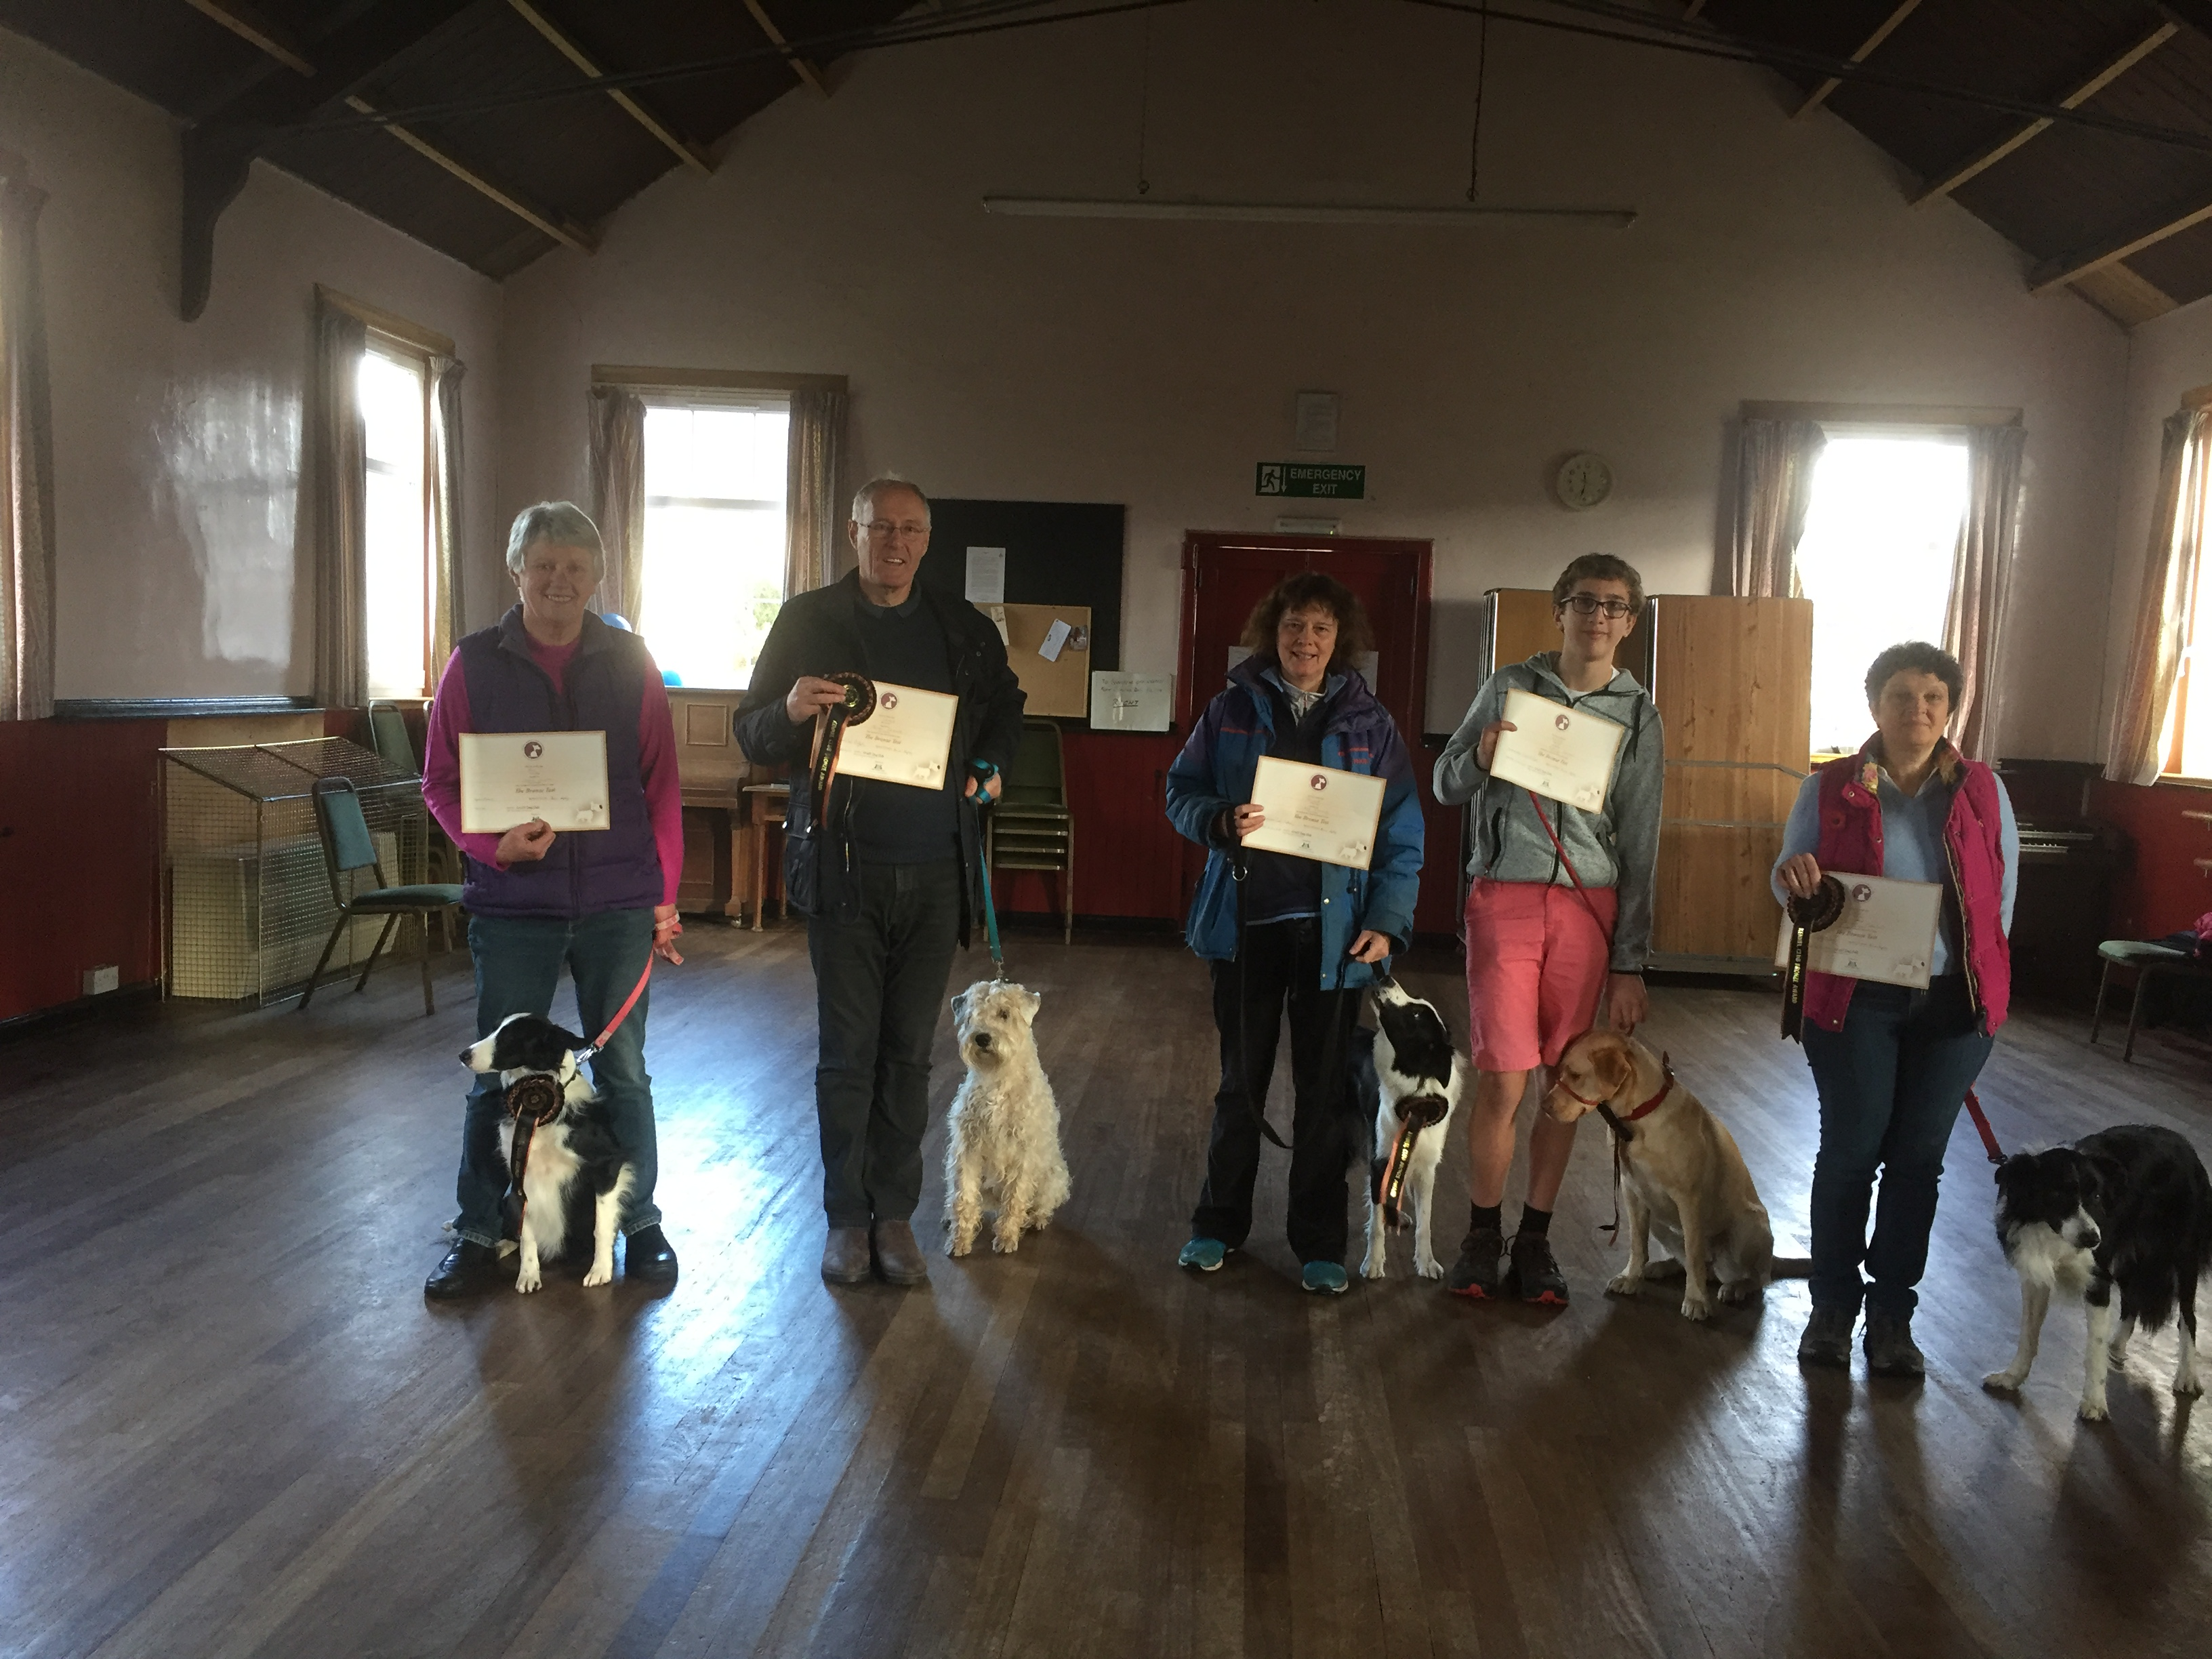 Kennel Club Good Citizen BRONZE November 2018 Diane with Fly, Brian with Nuala, Liz with Minnie, Thomas with Korra and Alison with Rona